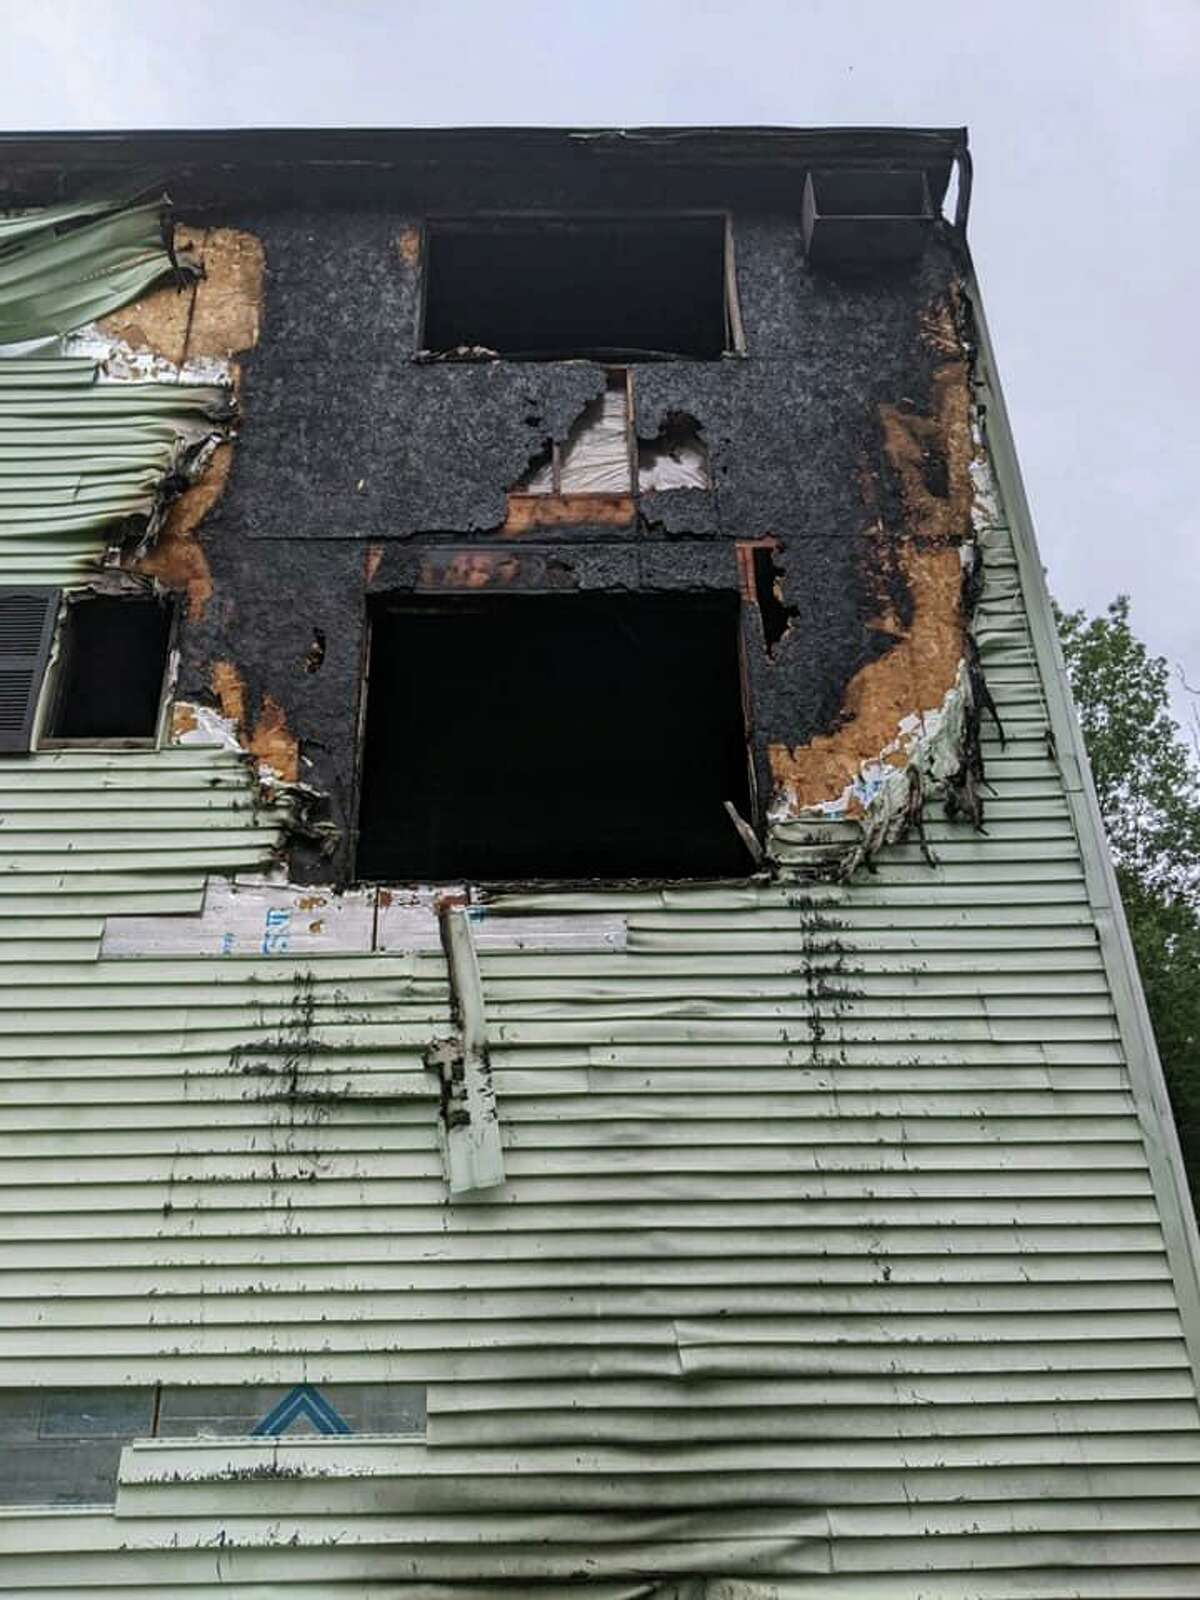 Rowayton Elementary School kindergarten teacher Gianna Fiorentini lost her Danbury townhouse in a fire on July 19. She and her family safely escaped.